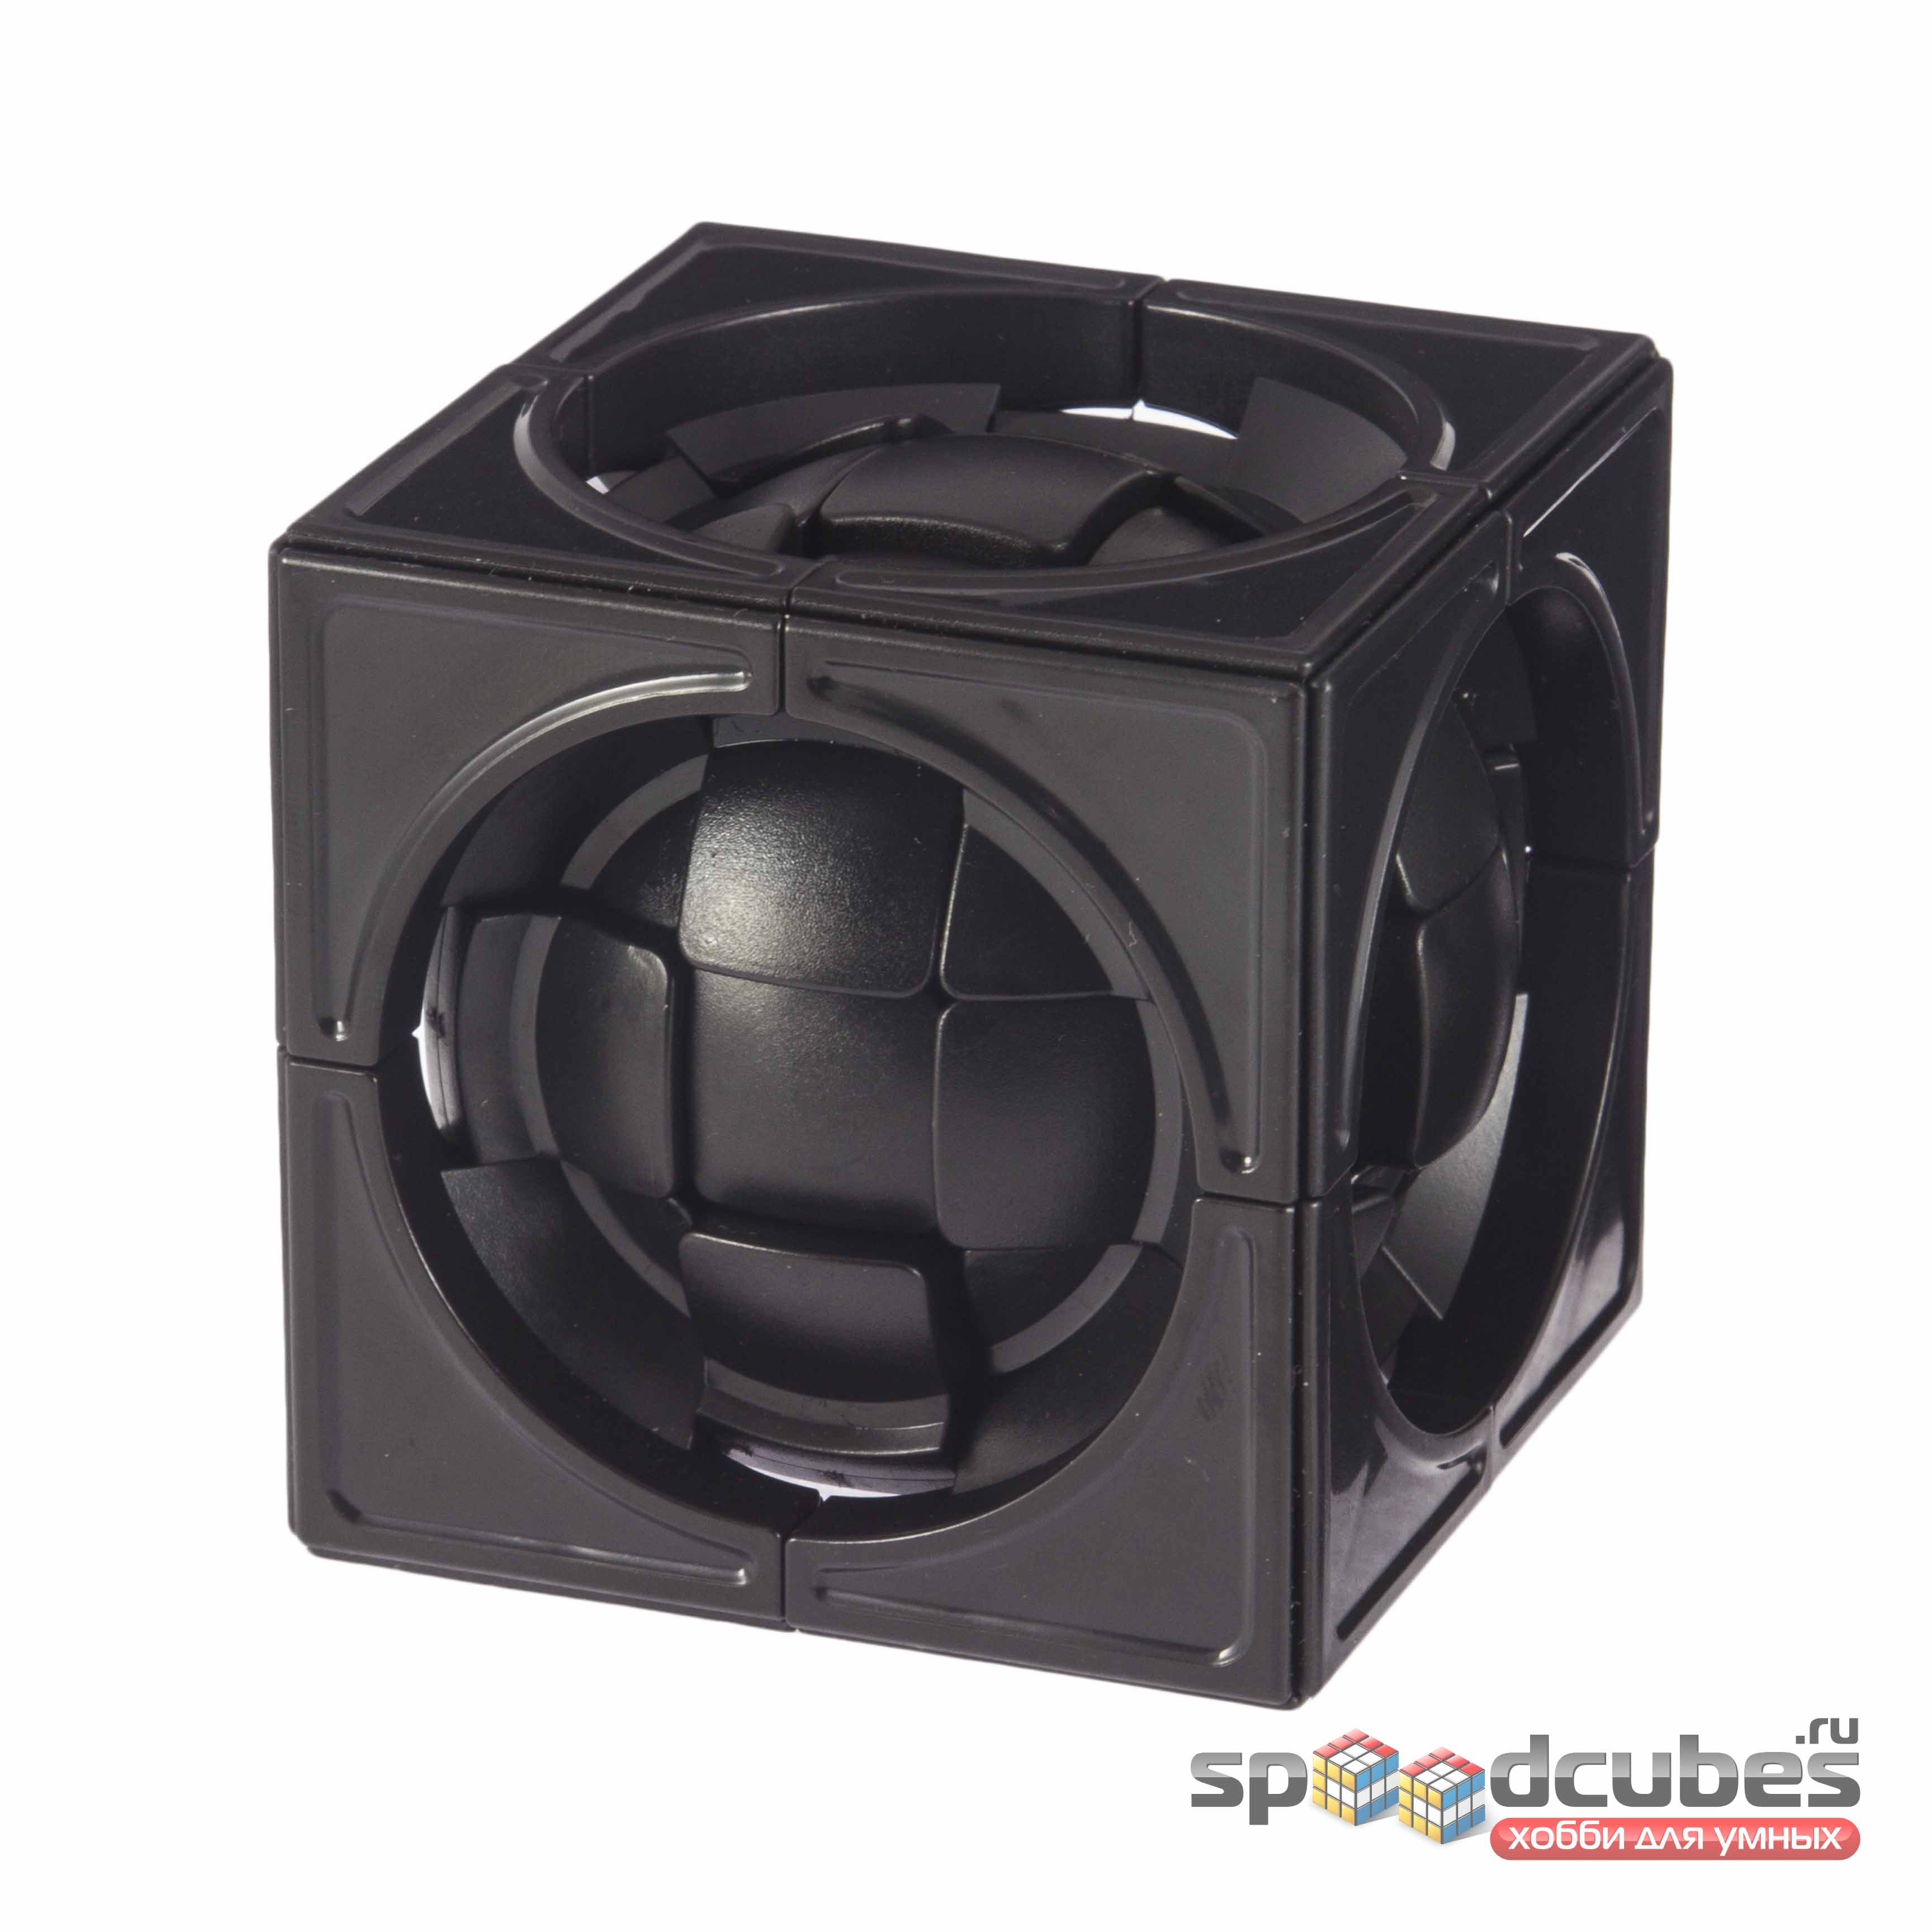 Funs Deformed 3x3x3 Black 3